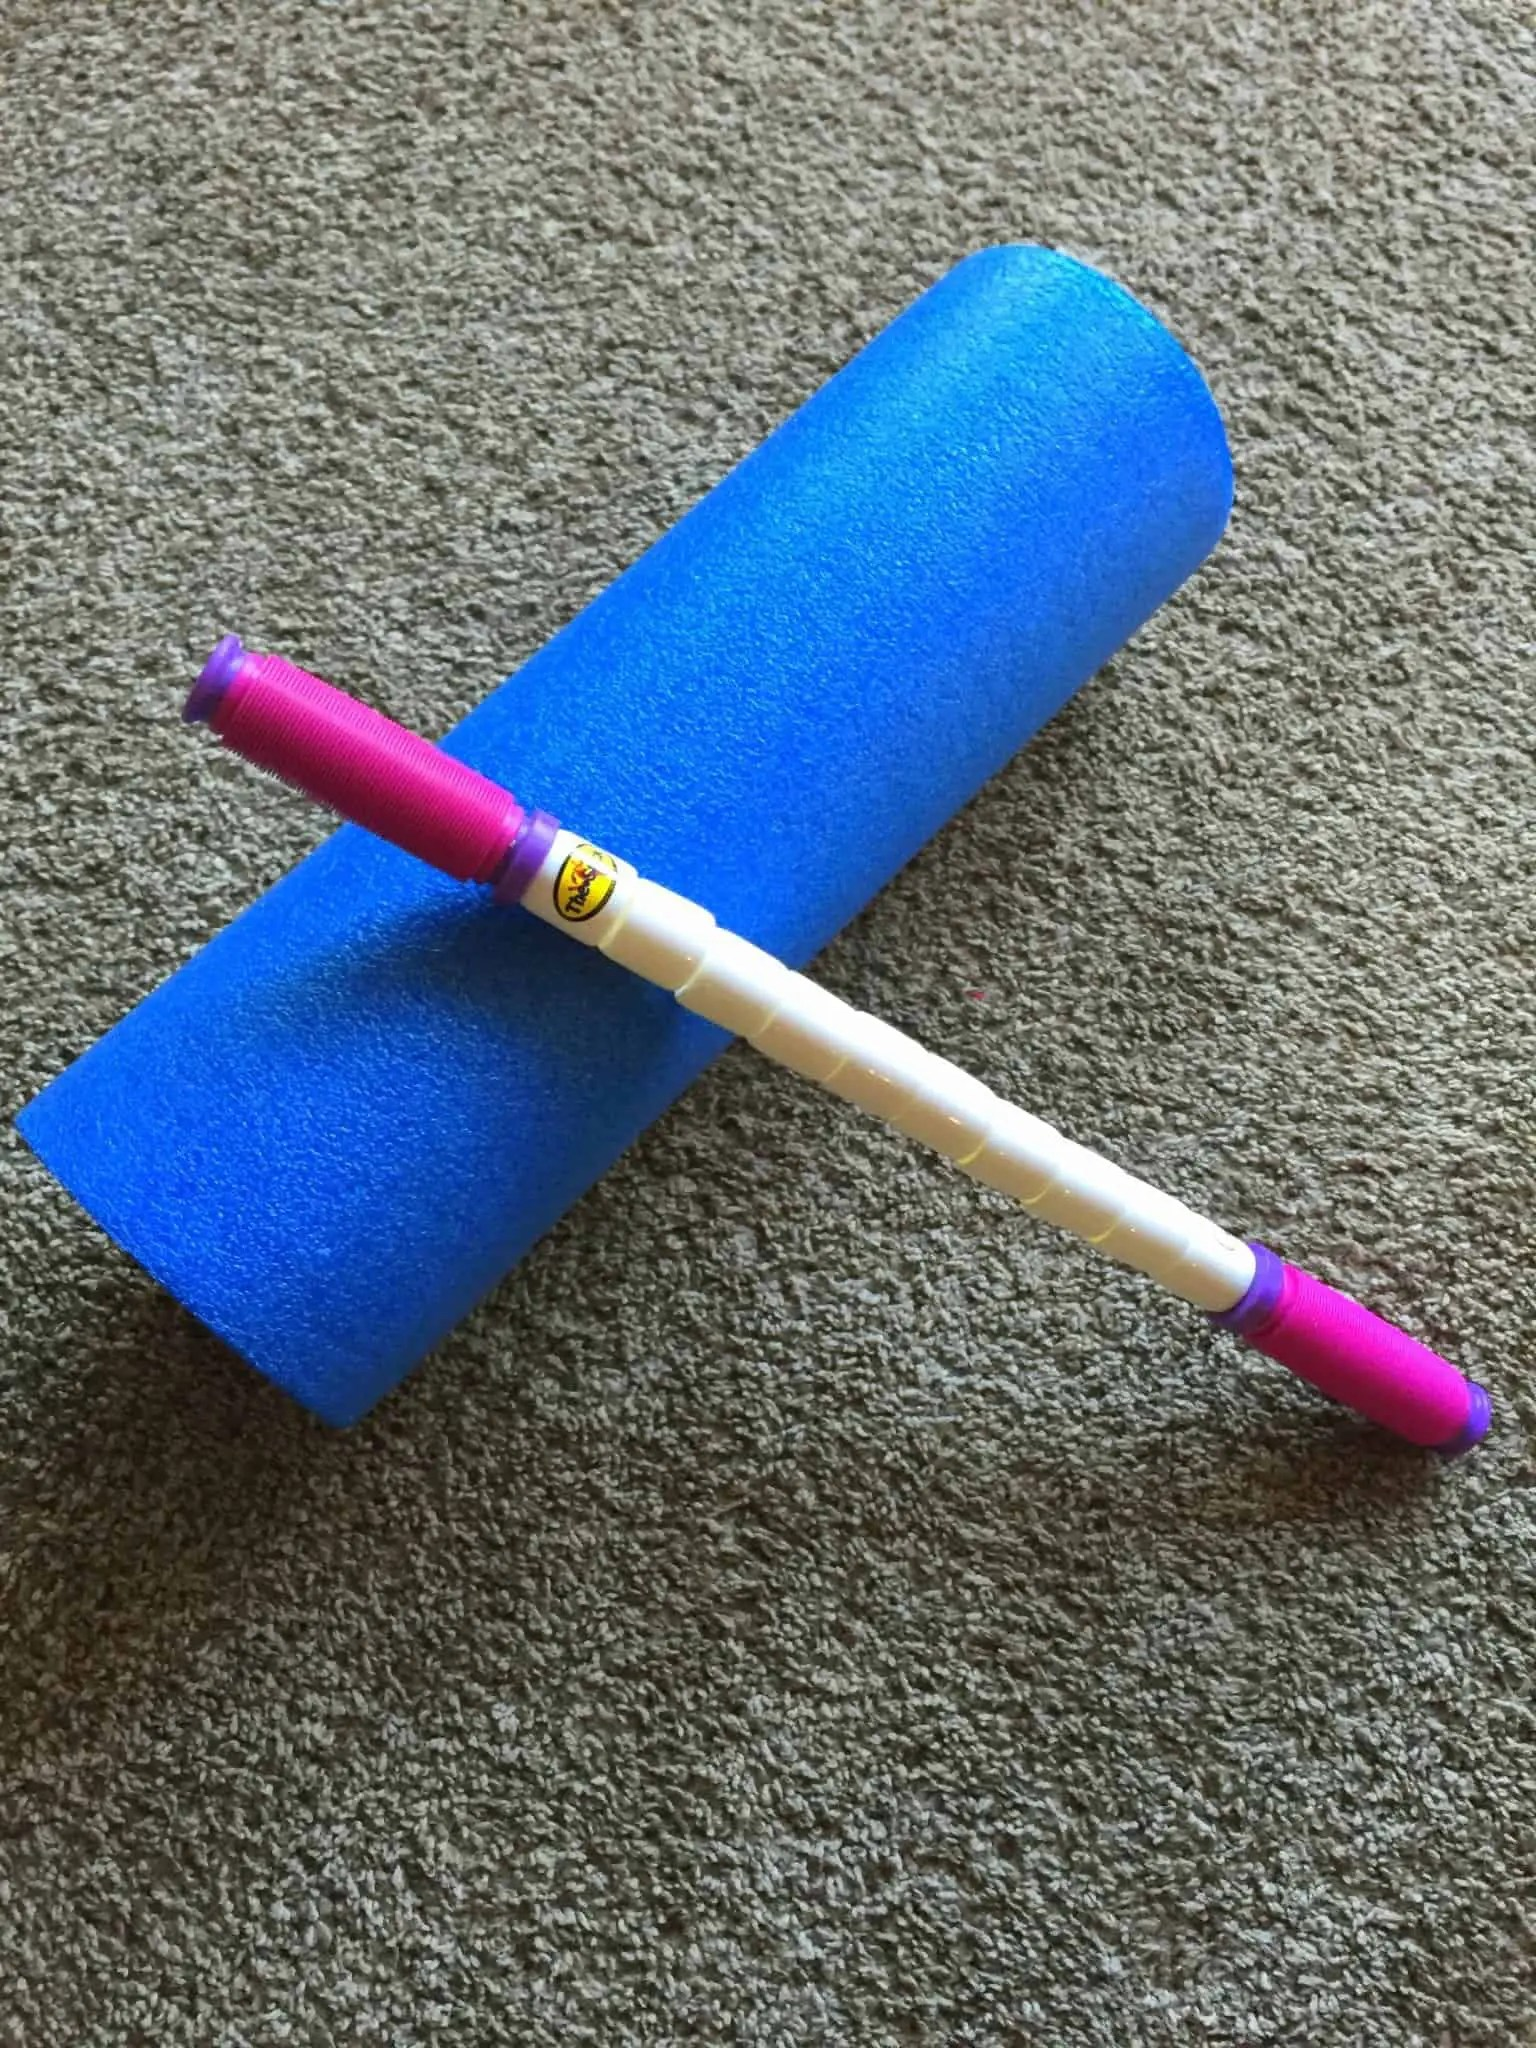 Foam Rolling and The Stick